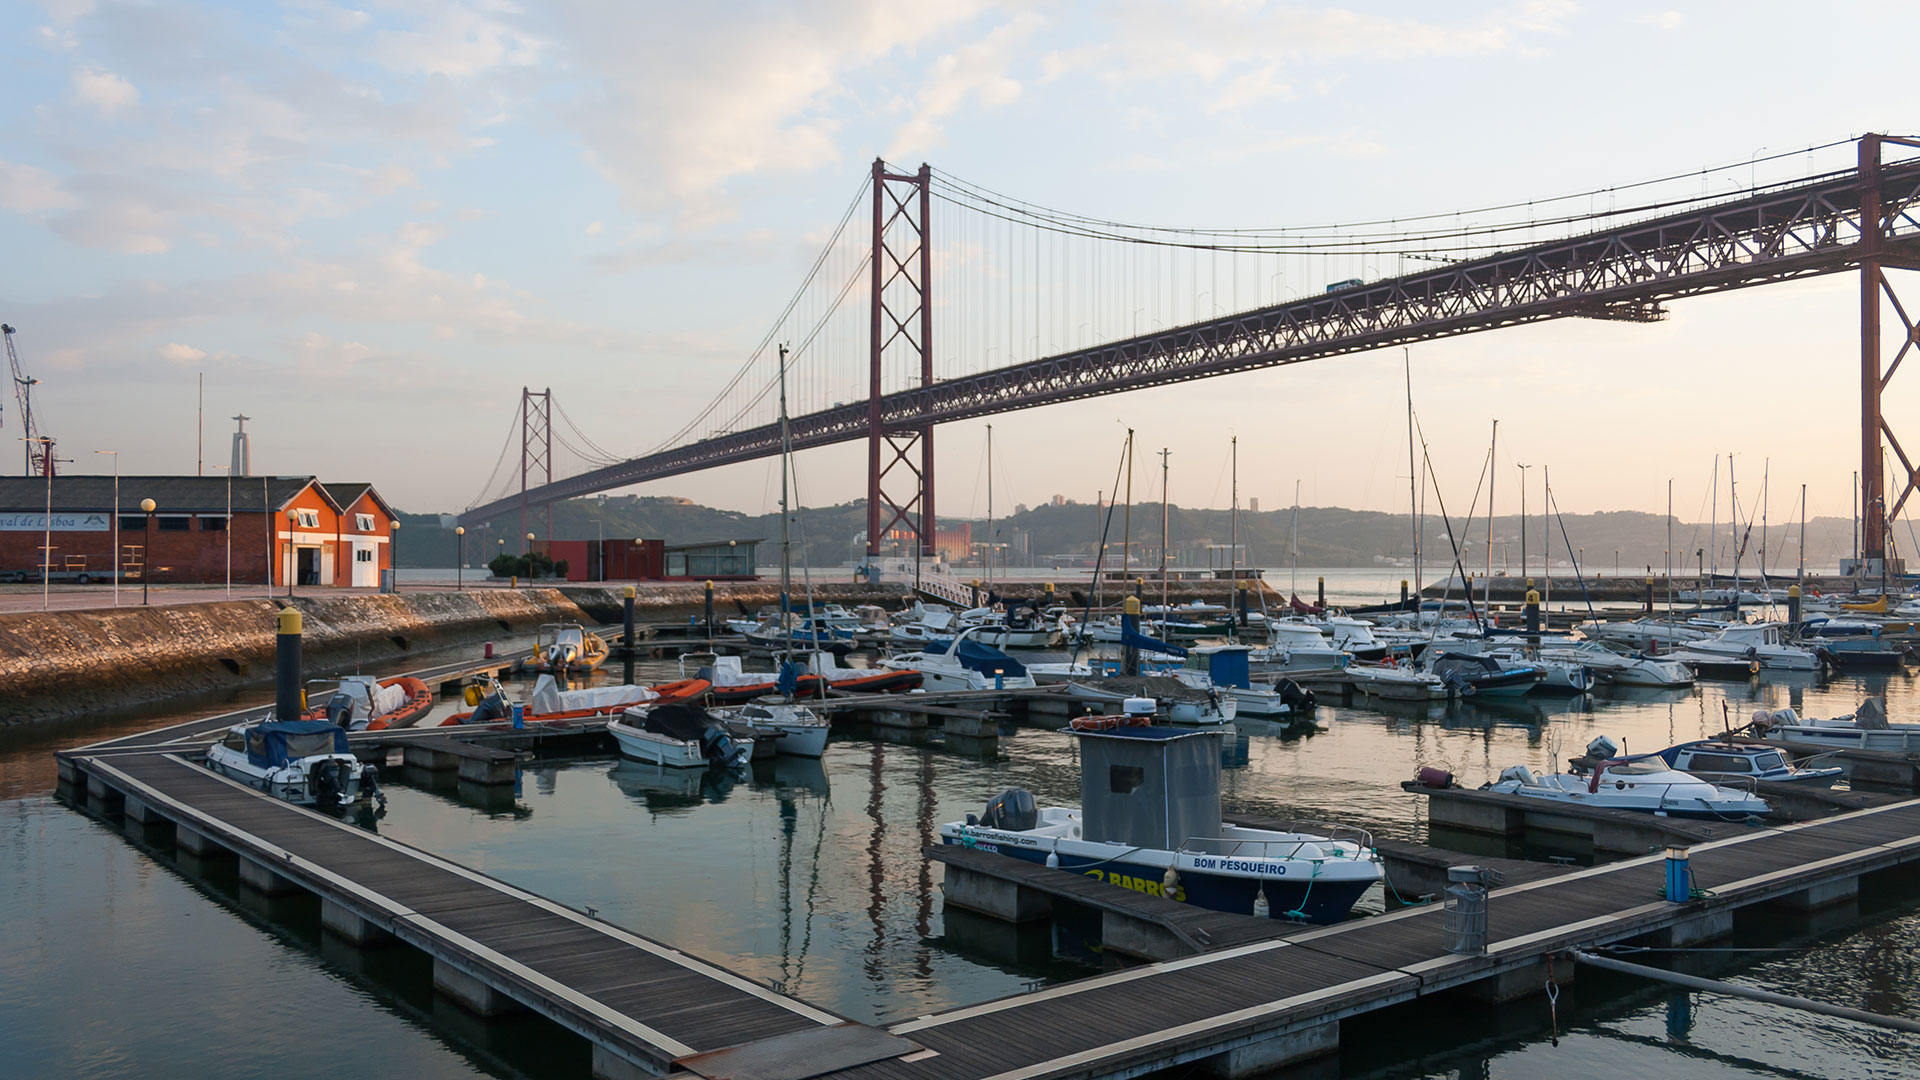 Bridge 25 of April (Ponte 25 de Abril) seen from Docas in Lisbon